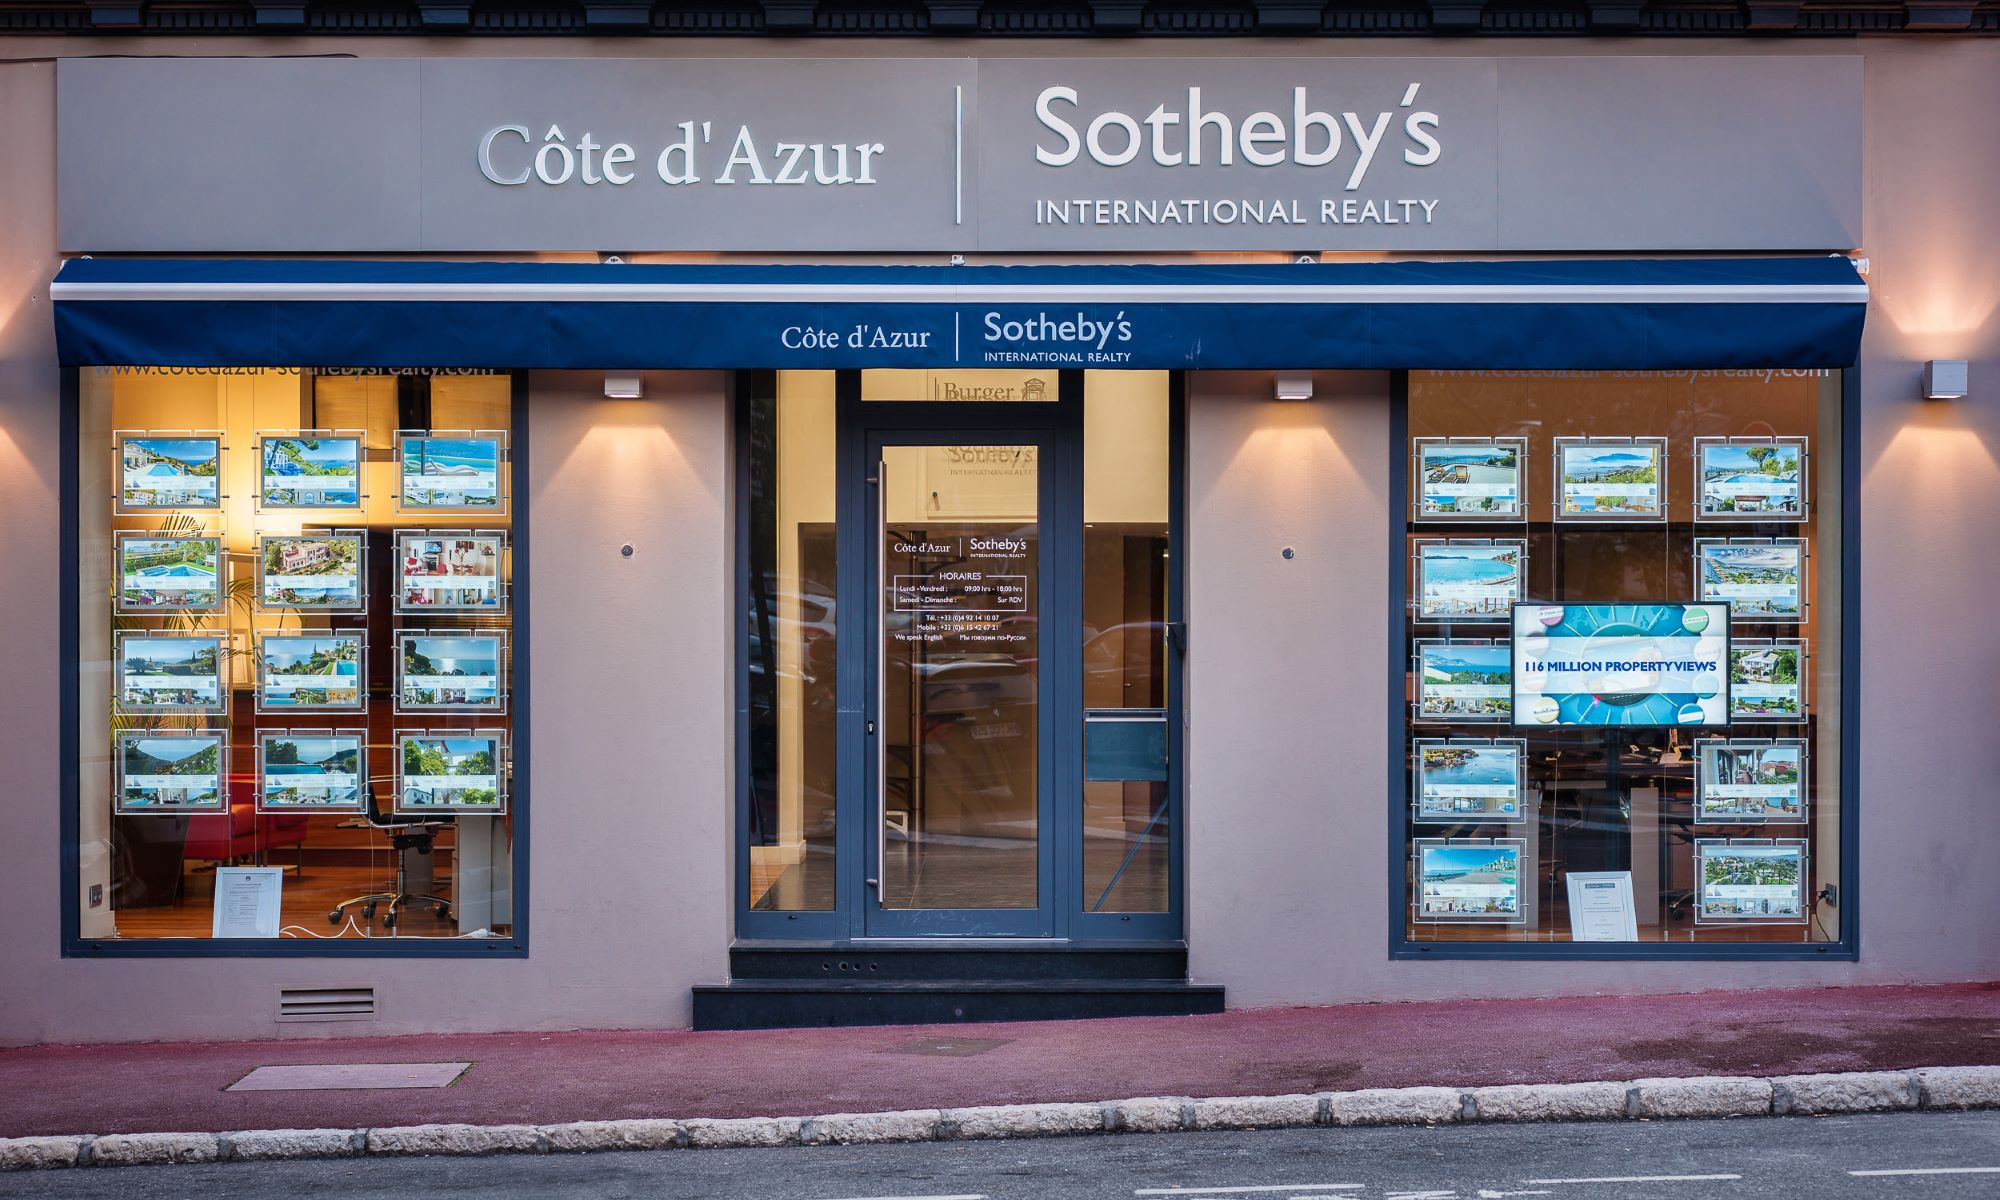 Office Côte d'Azur Sotheby's International Realty Photo